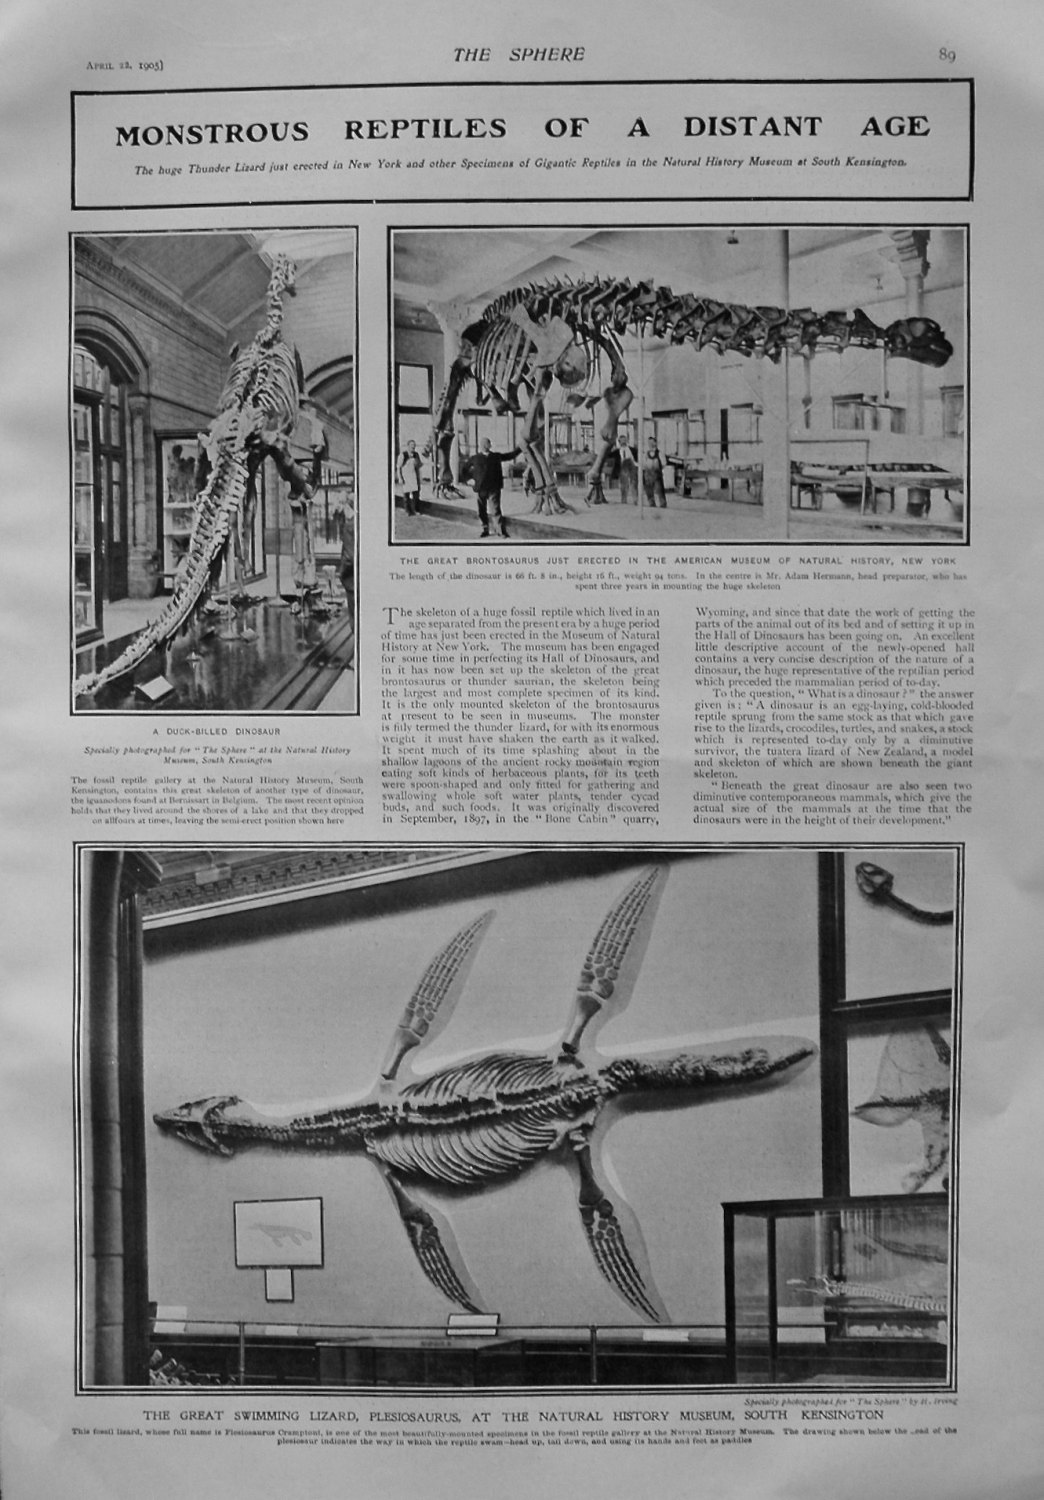 Monstrous Reptiles of a Distant Age. 1905